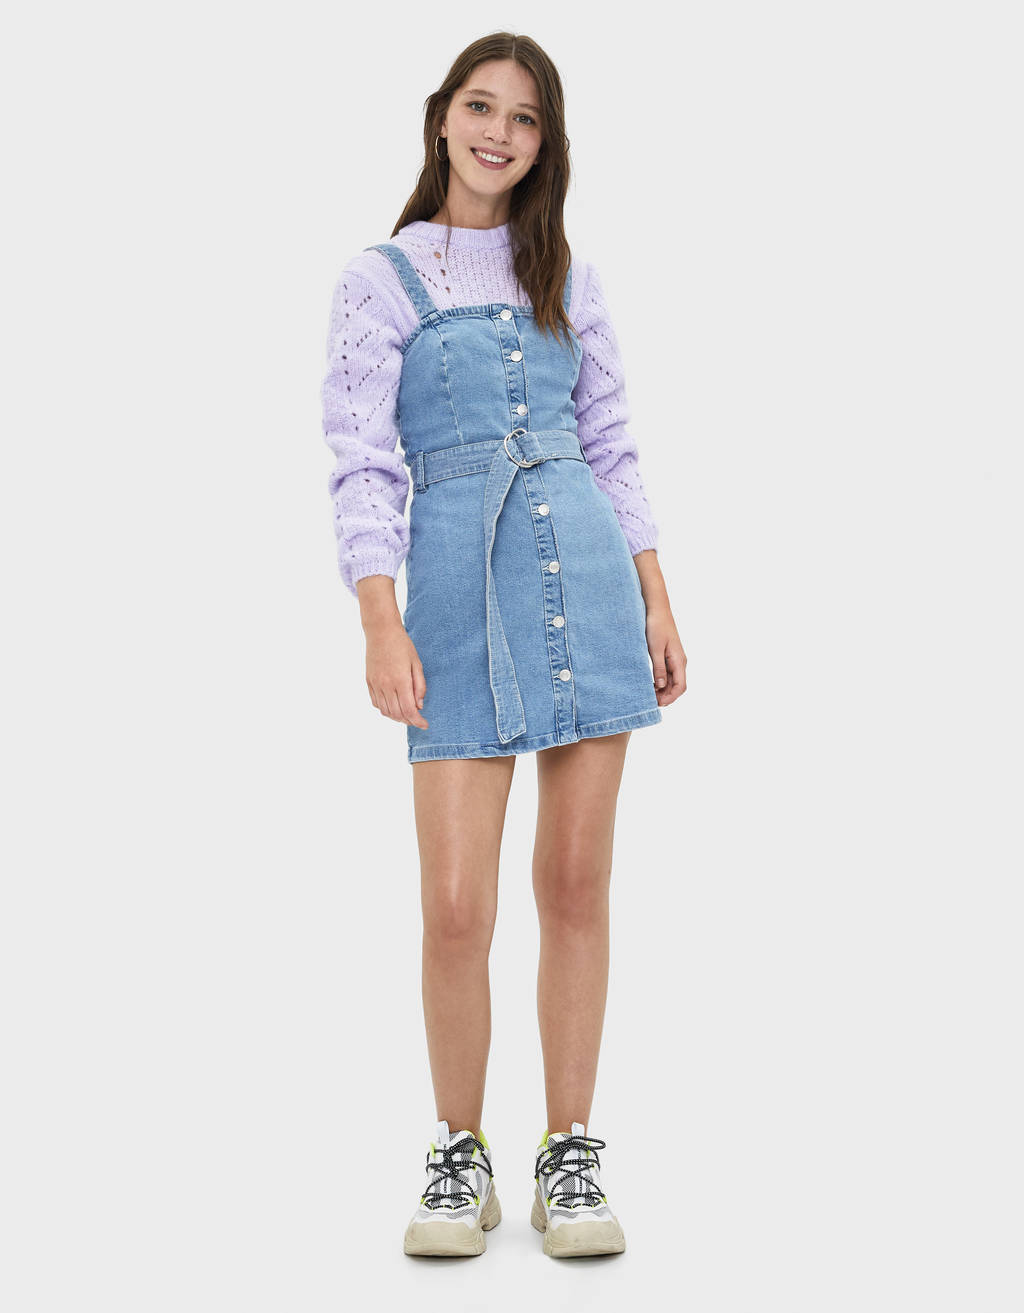 Vestit curt denim